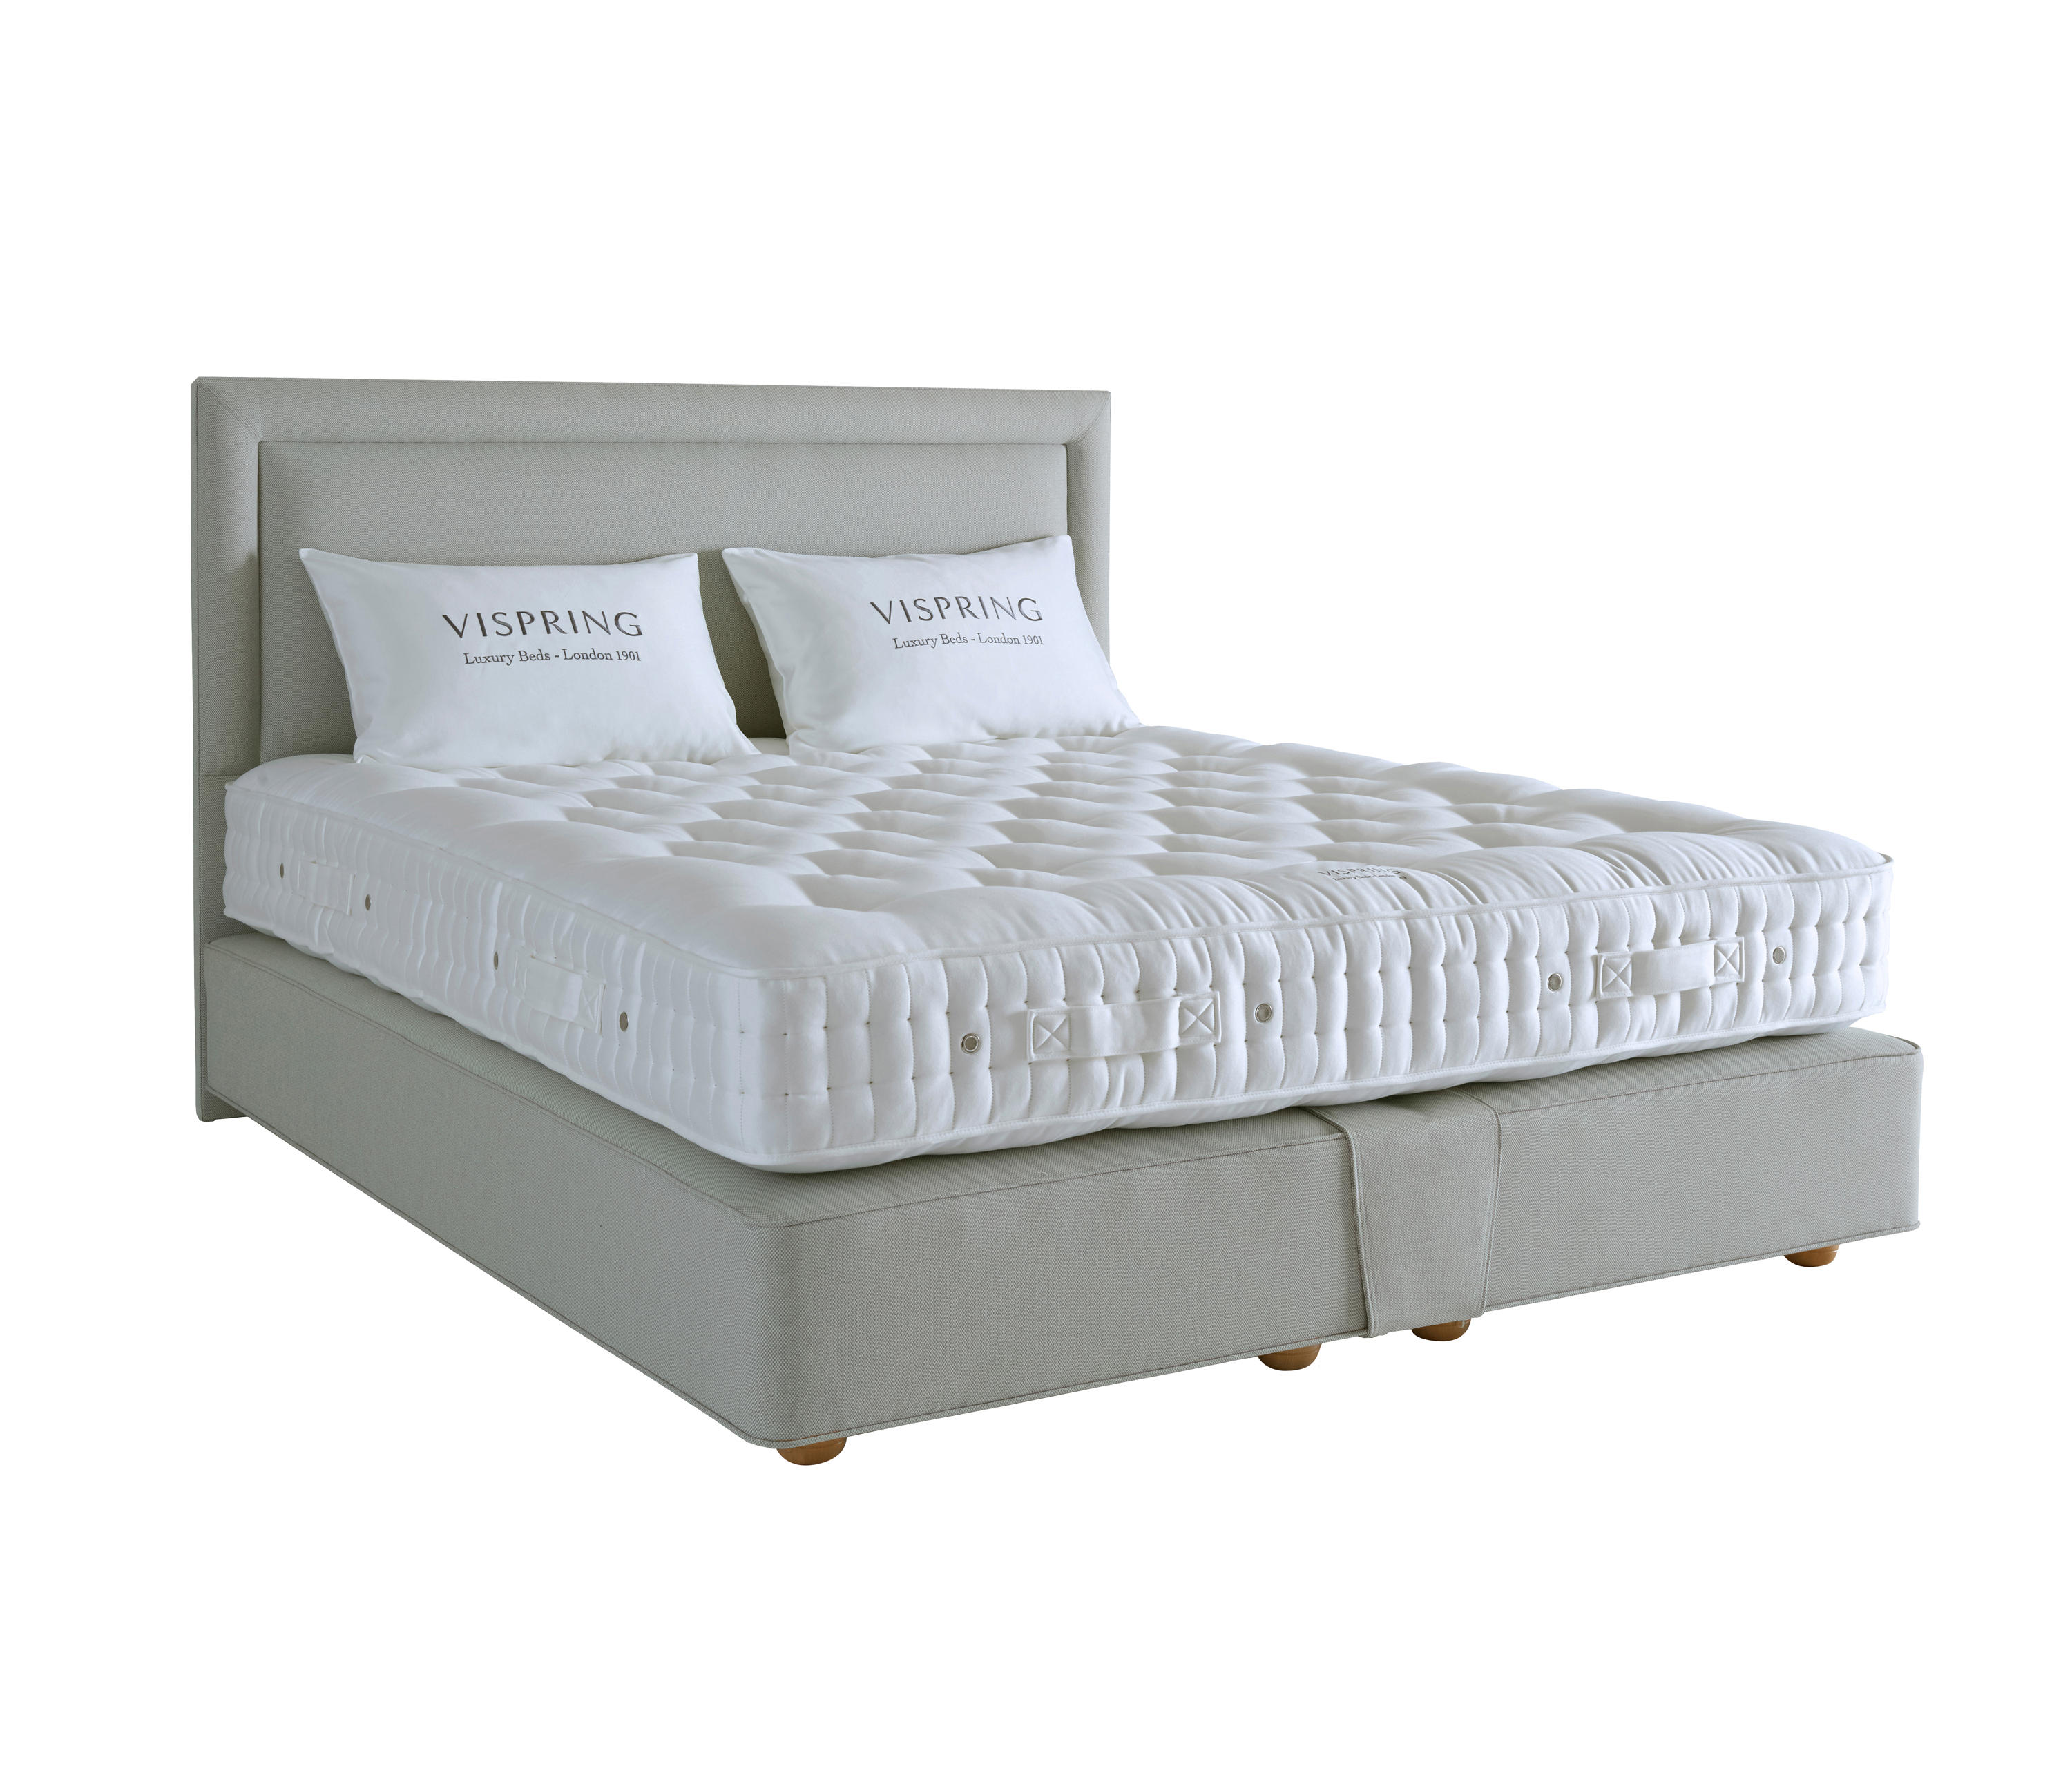 BARONET SUPERB - Double beds from Vispring   Architonic